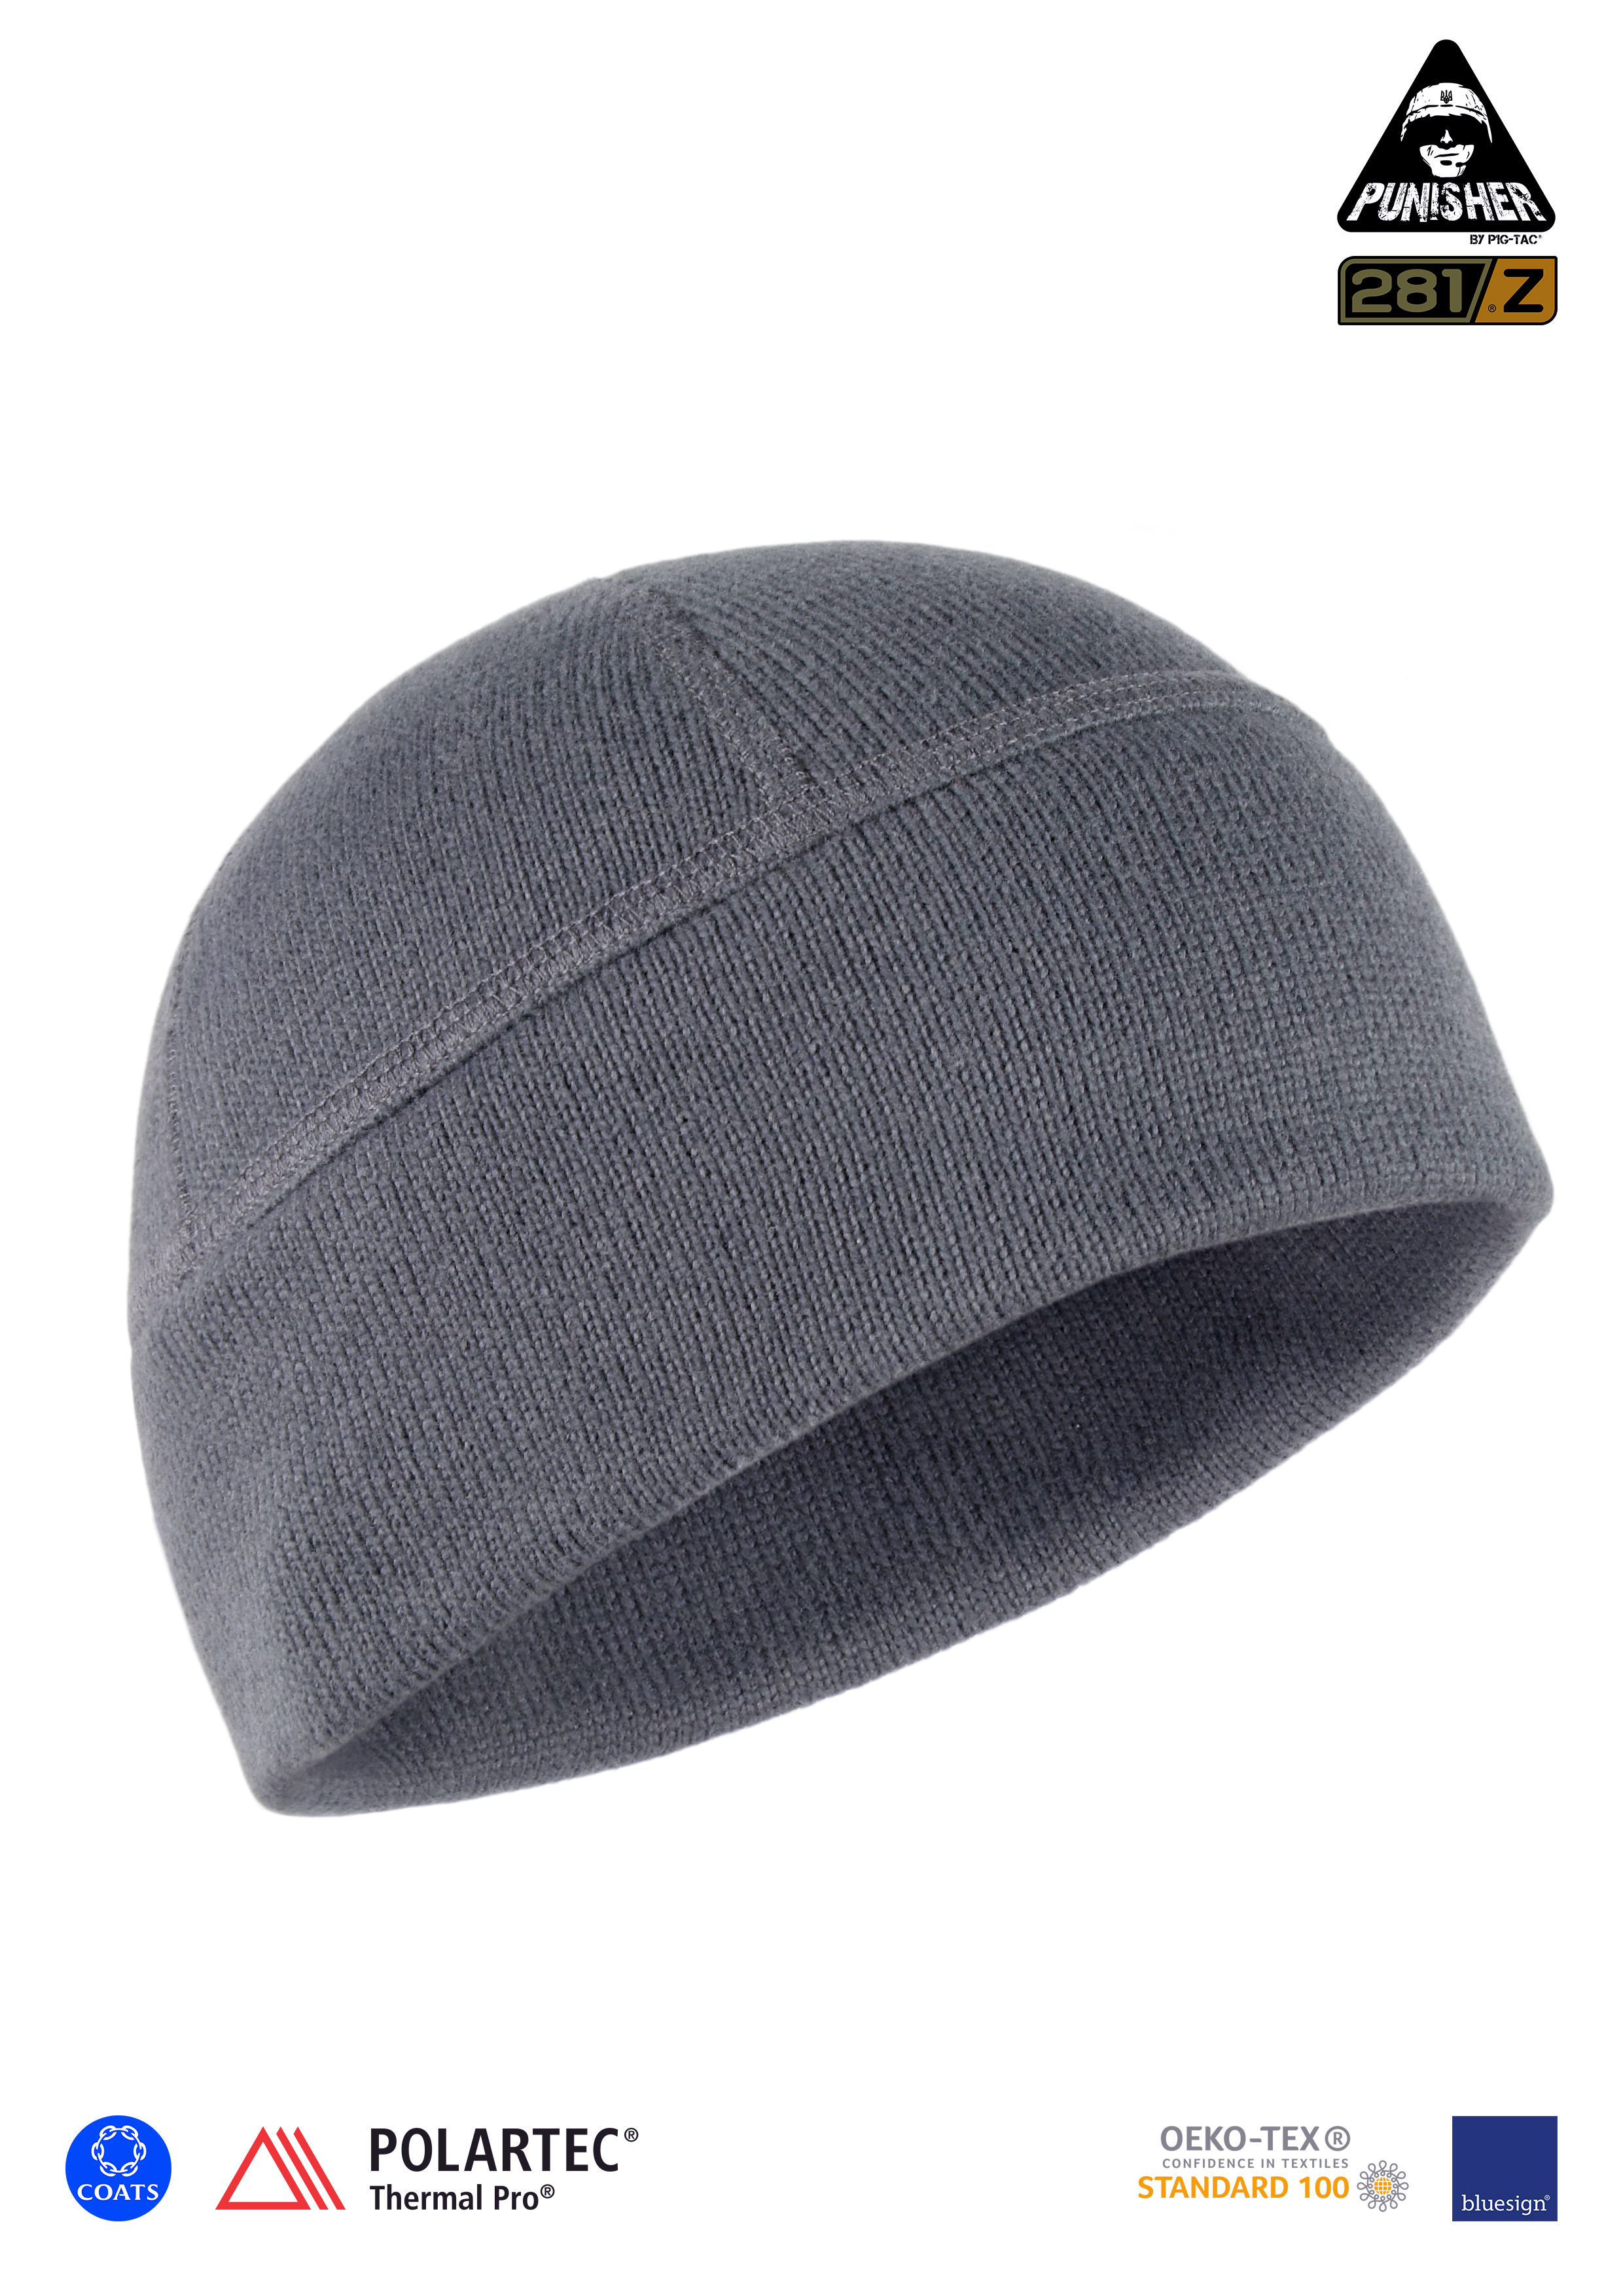 Demi-season field hat